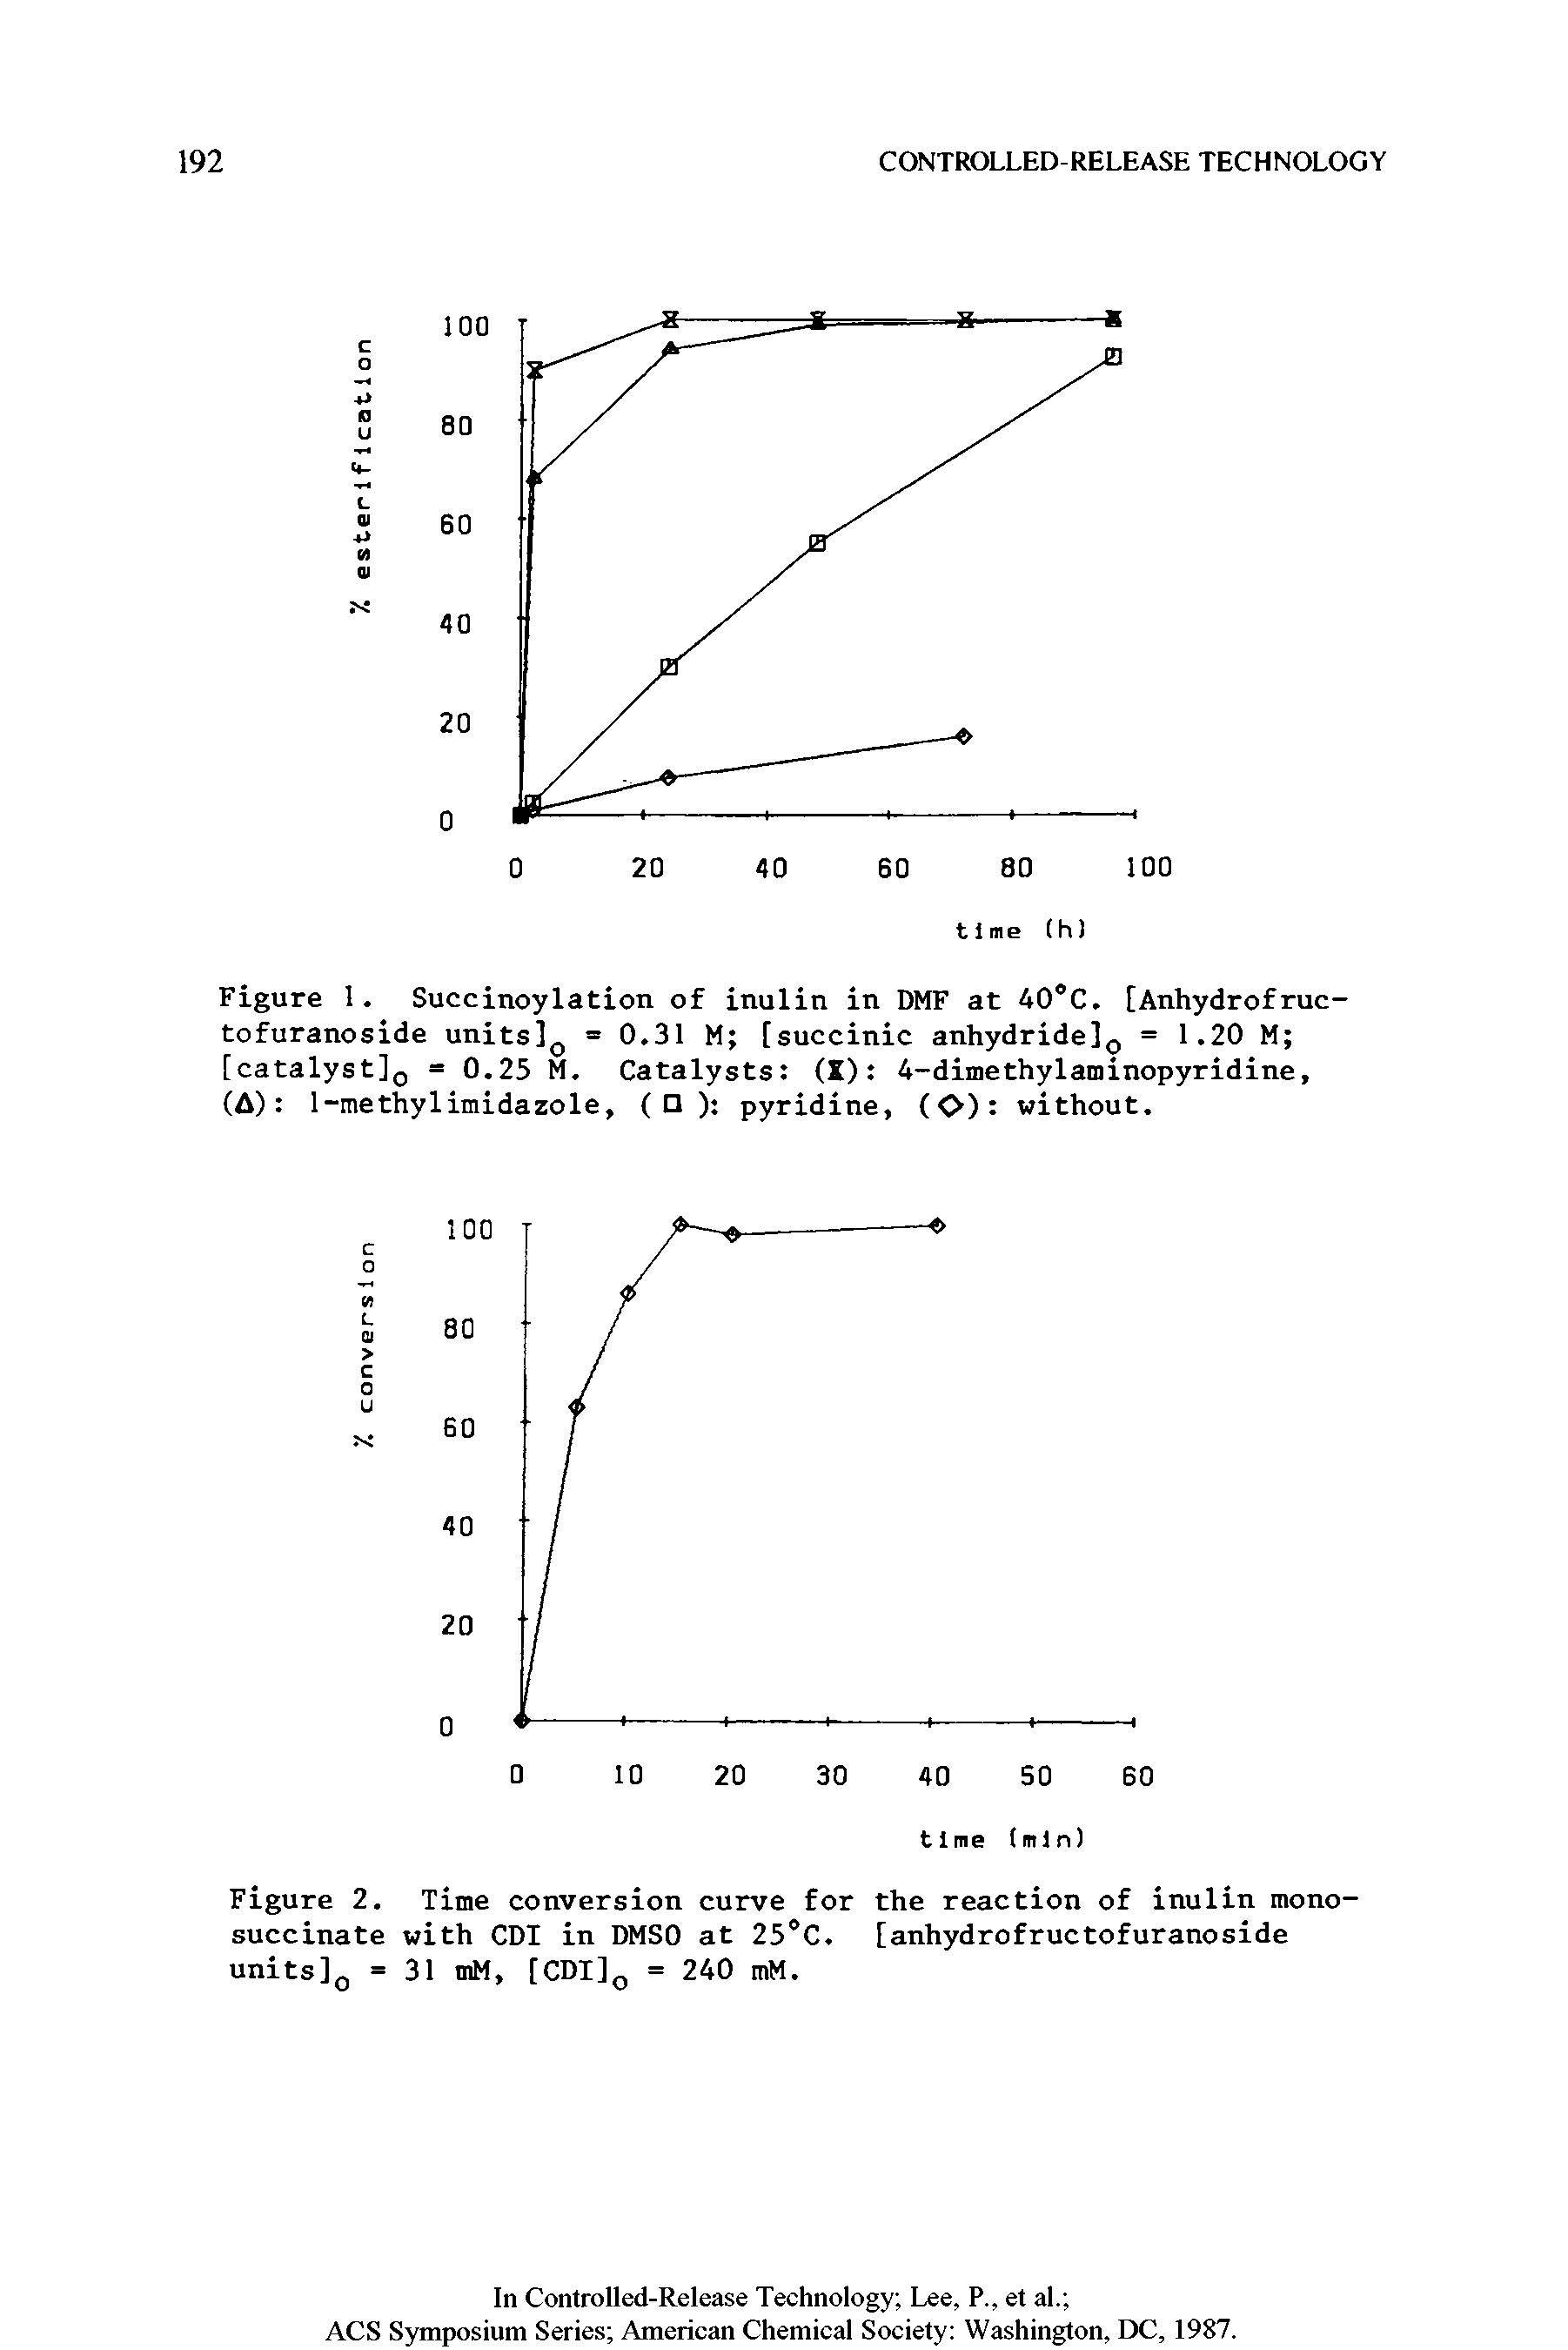 Figure 2. Time conversion curve for the reaction of inulin monosuccinate with CDI in DMSO at 25°C. [anhydrofructofuranoside units]0 = 31 mM, [CDI]Q = 240 mM.